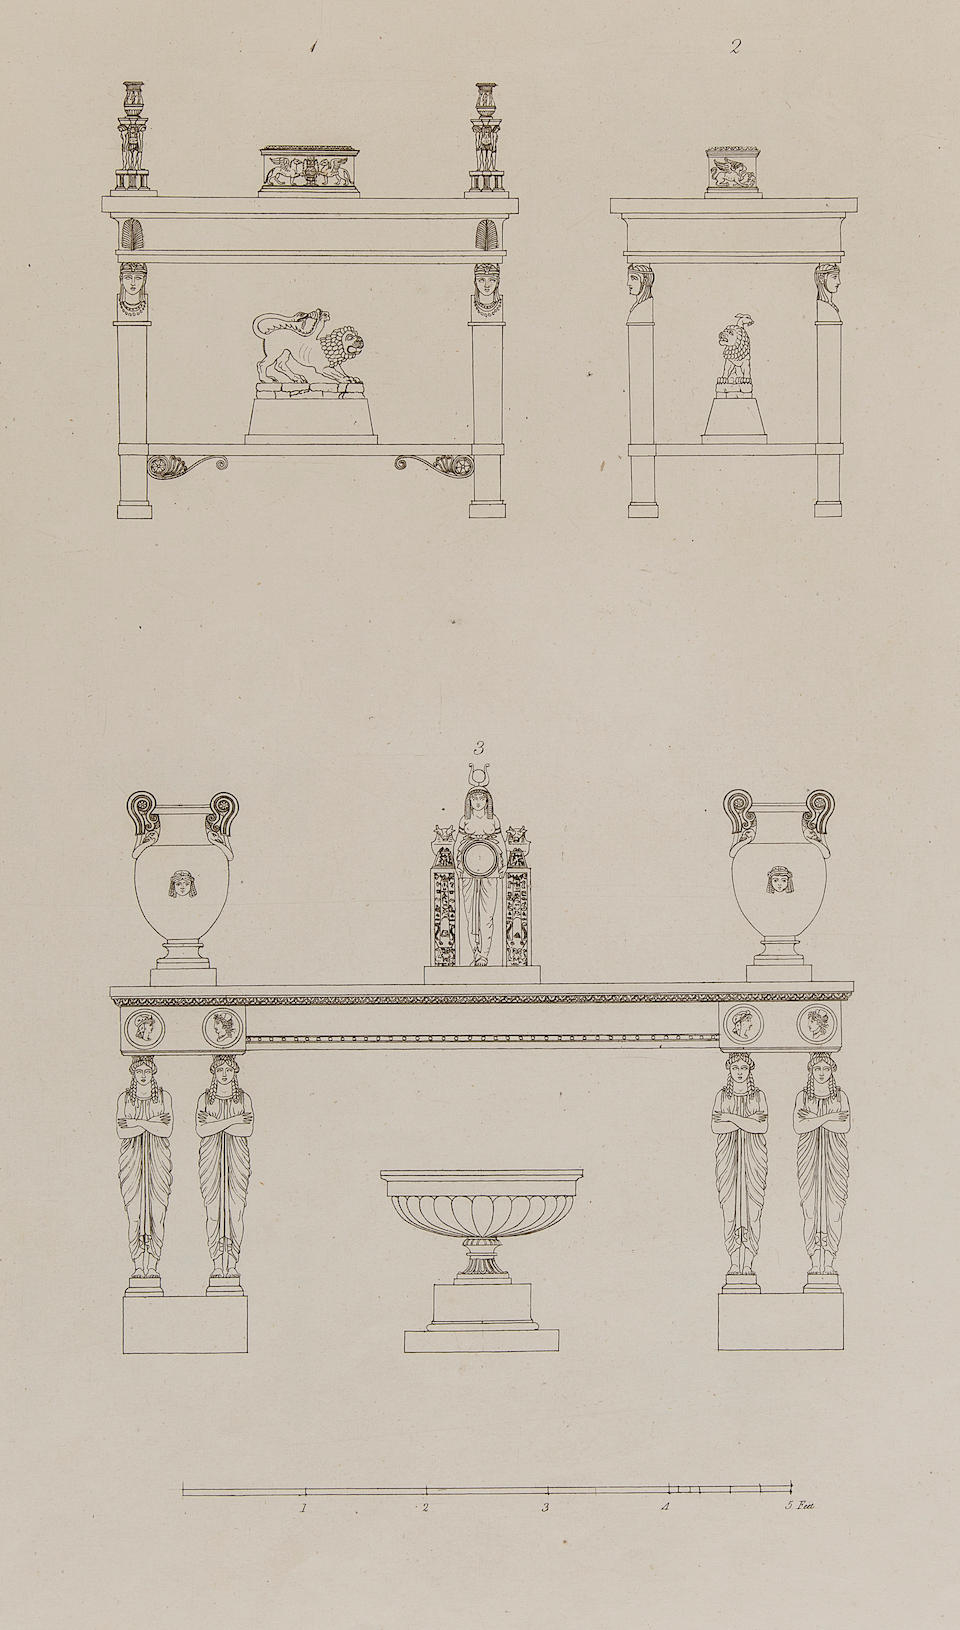 HOPE, THOMAS. 1770?-1831. Household Furniture and Interior Decoration. London: T. Bensley for Longman, 1807.